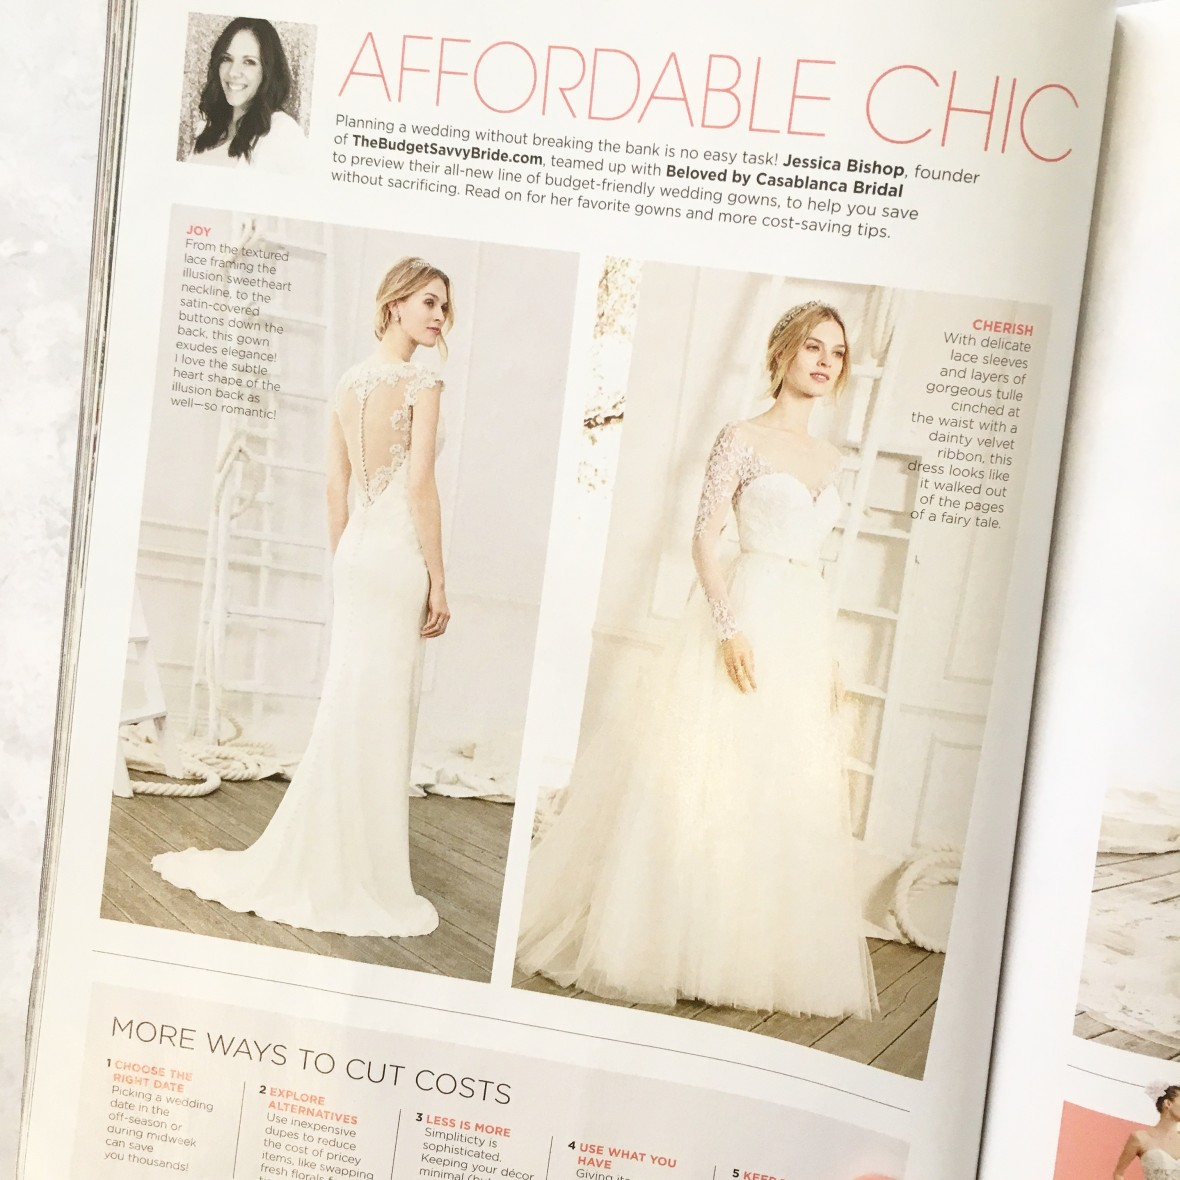 The Budget Savvy Bride and Beloved by Casablanca